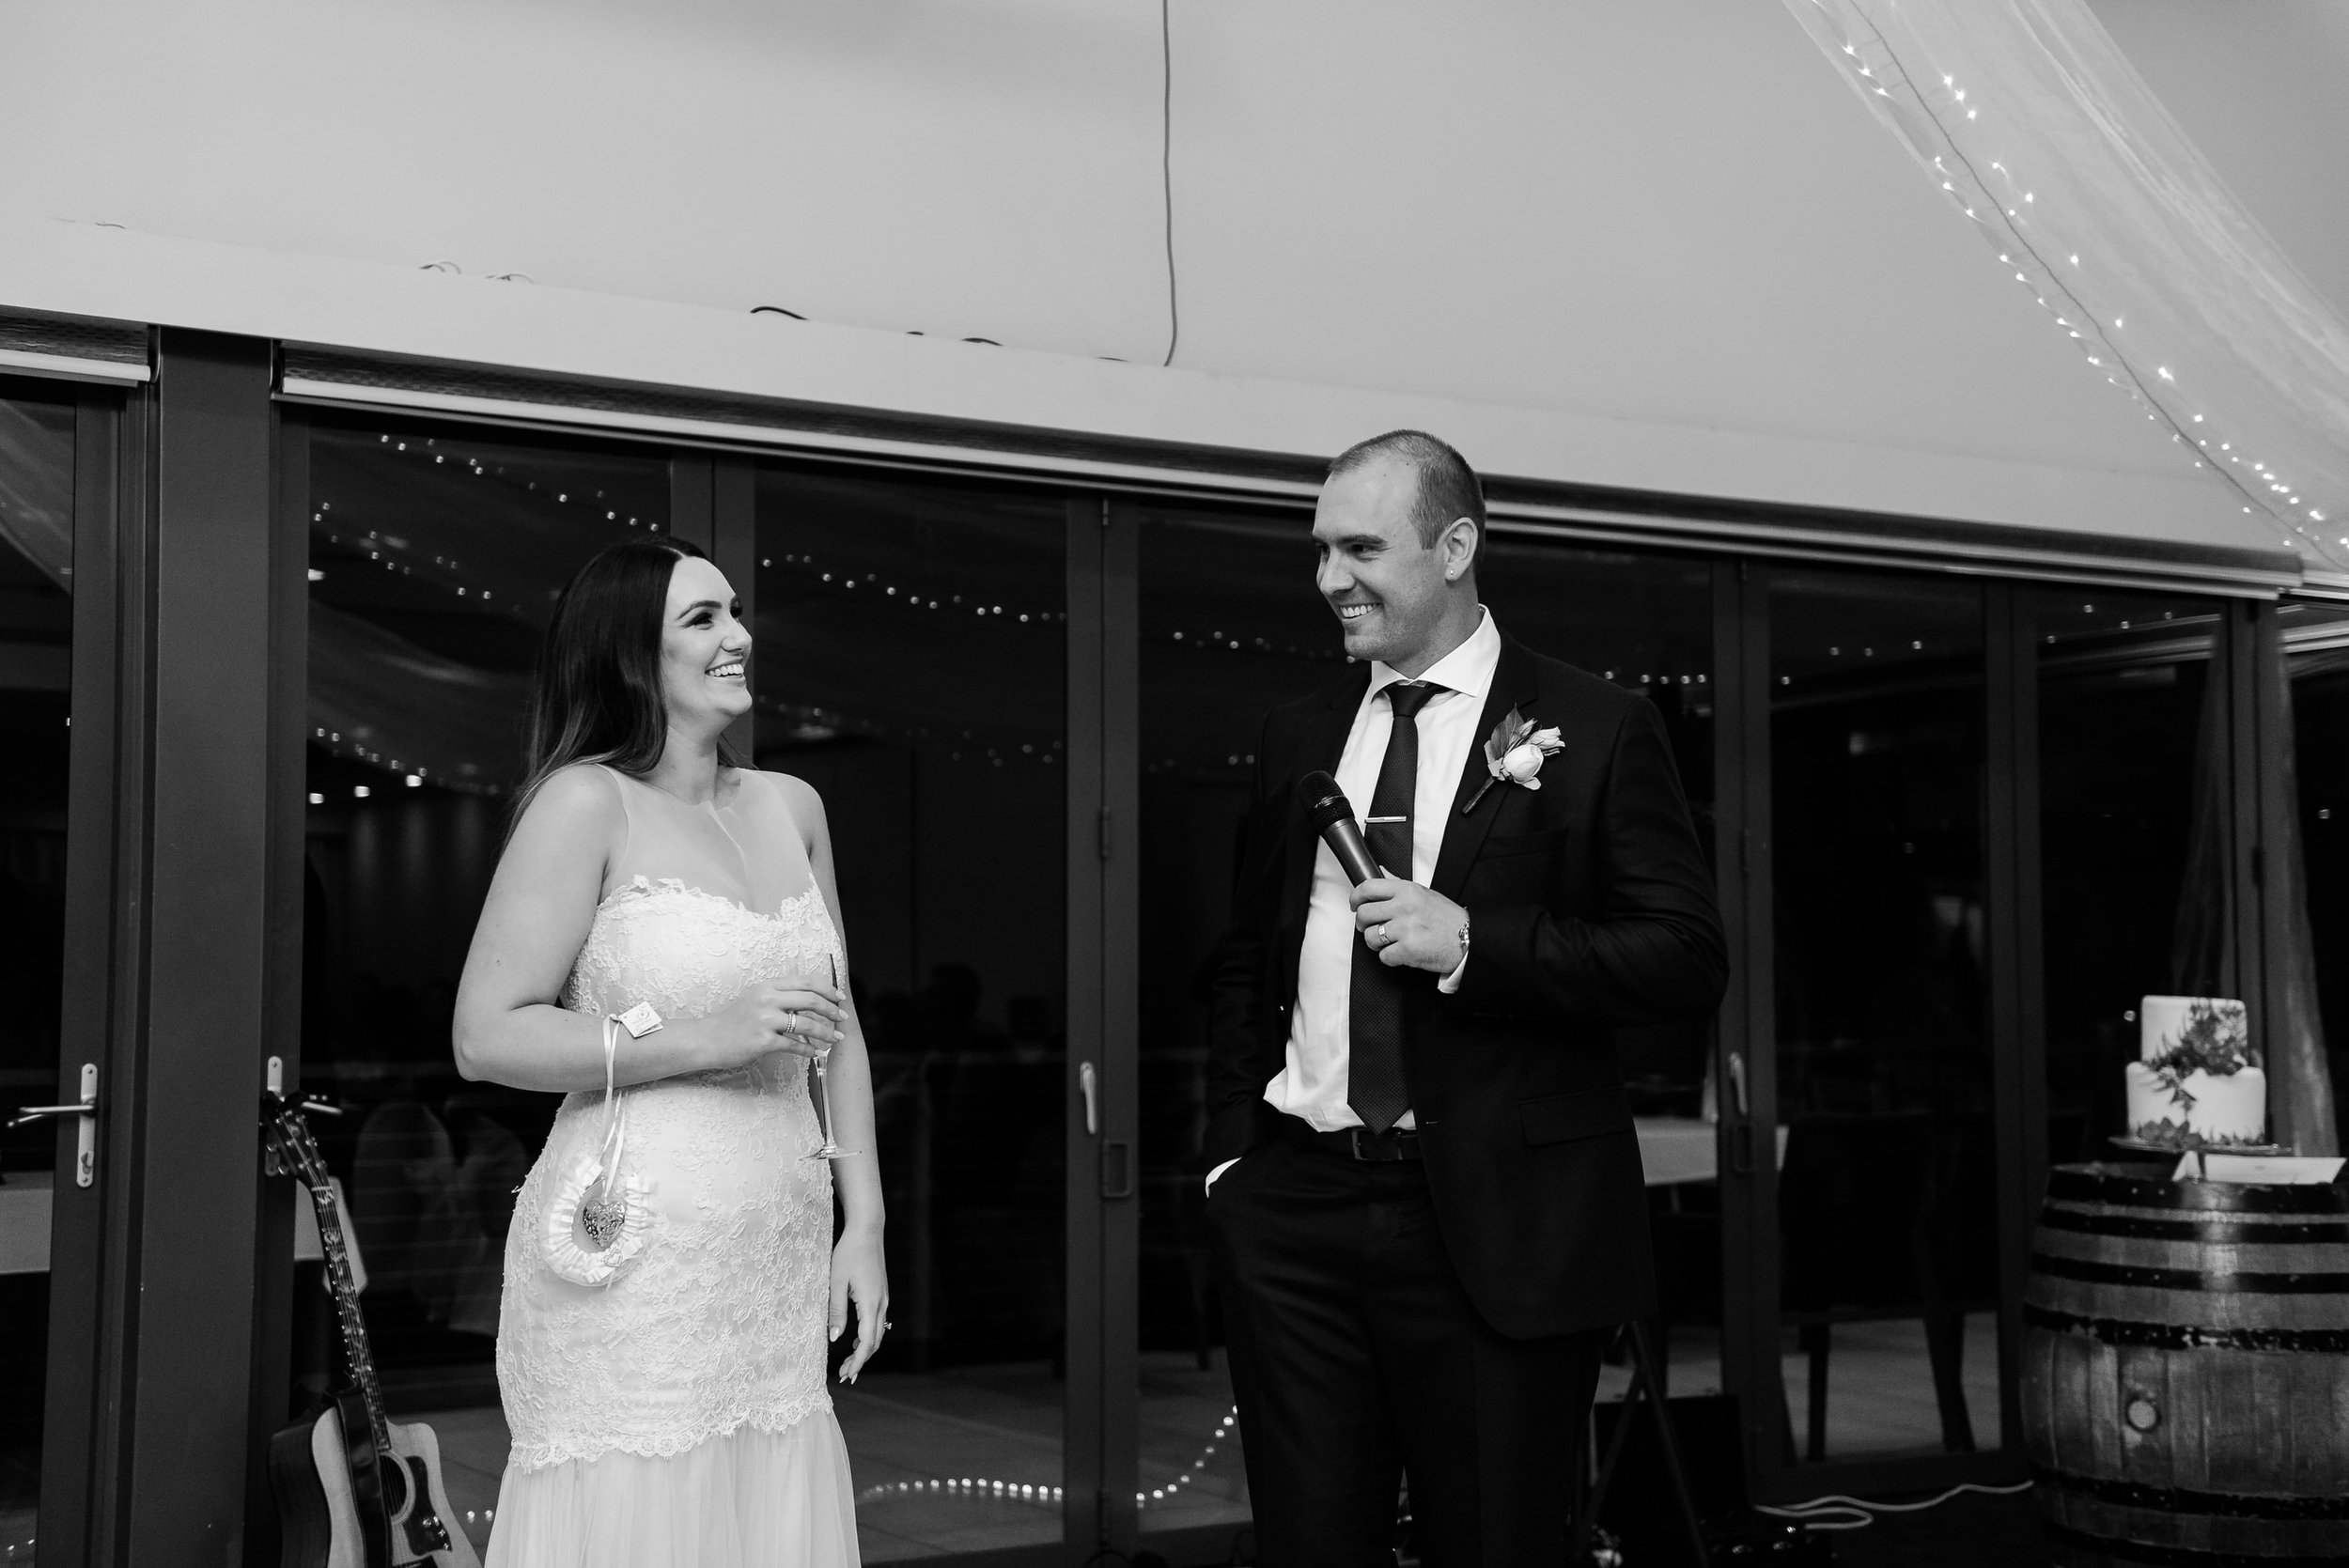 Justin_And_Jim_Photography_Balgownie_Winery_Wedding60.JPG